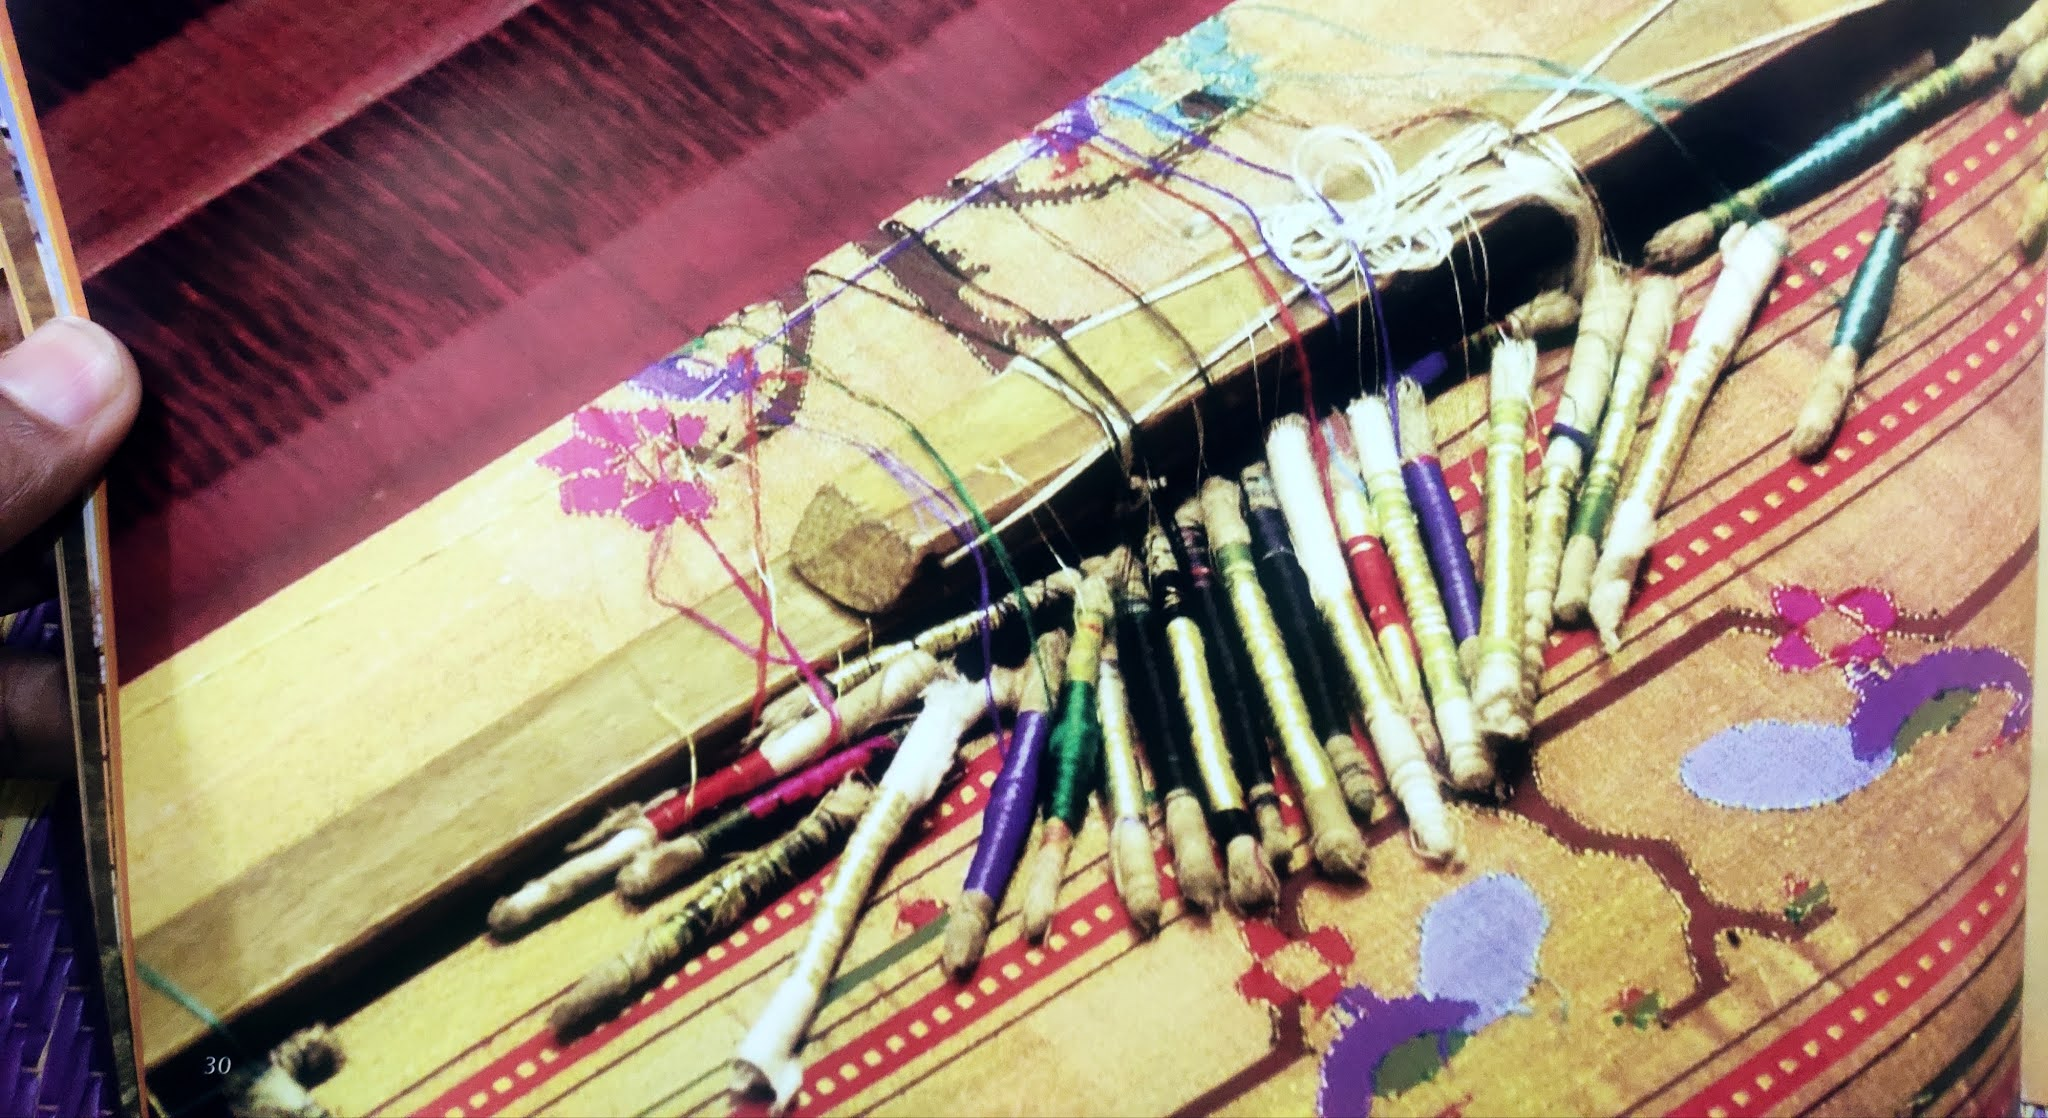 Image contains hand made crafts